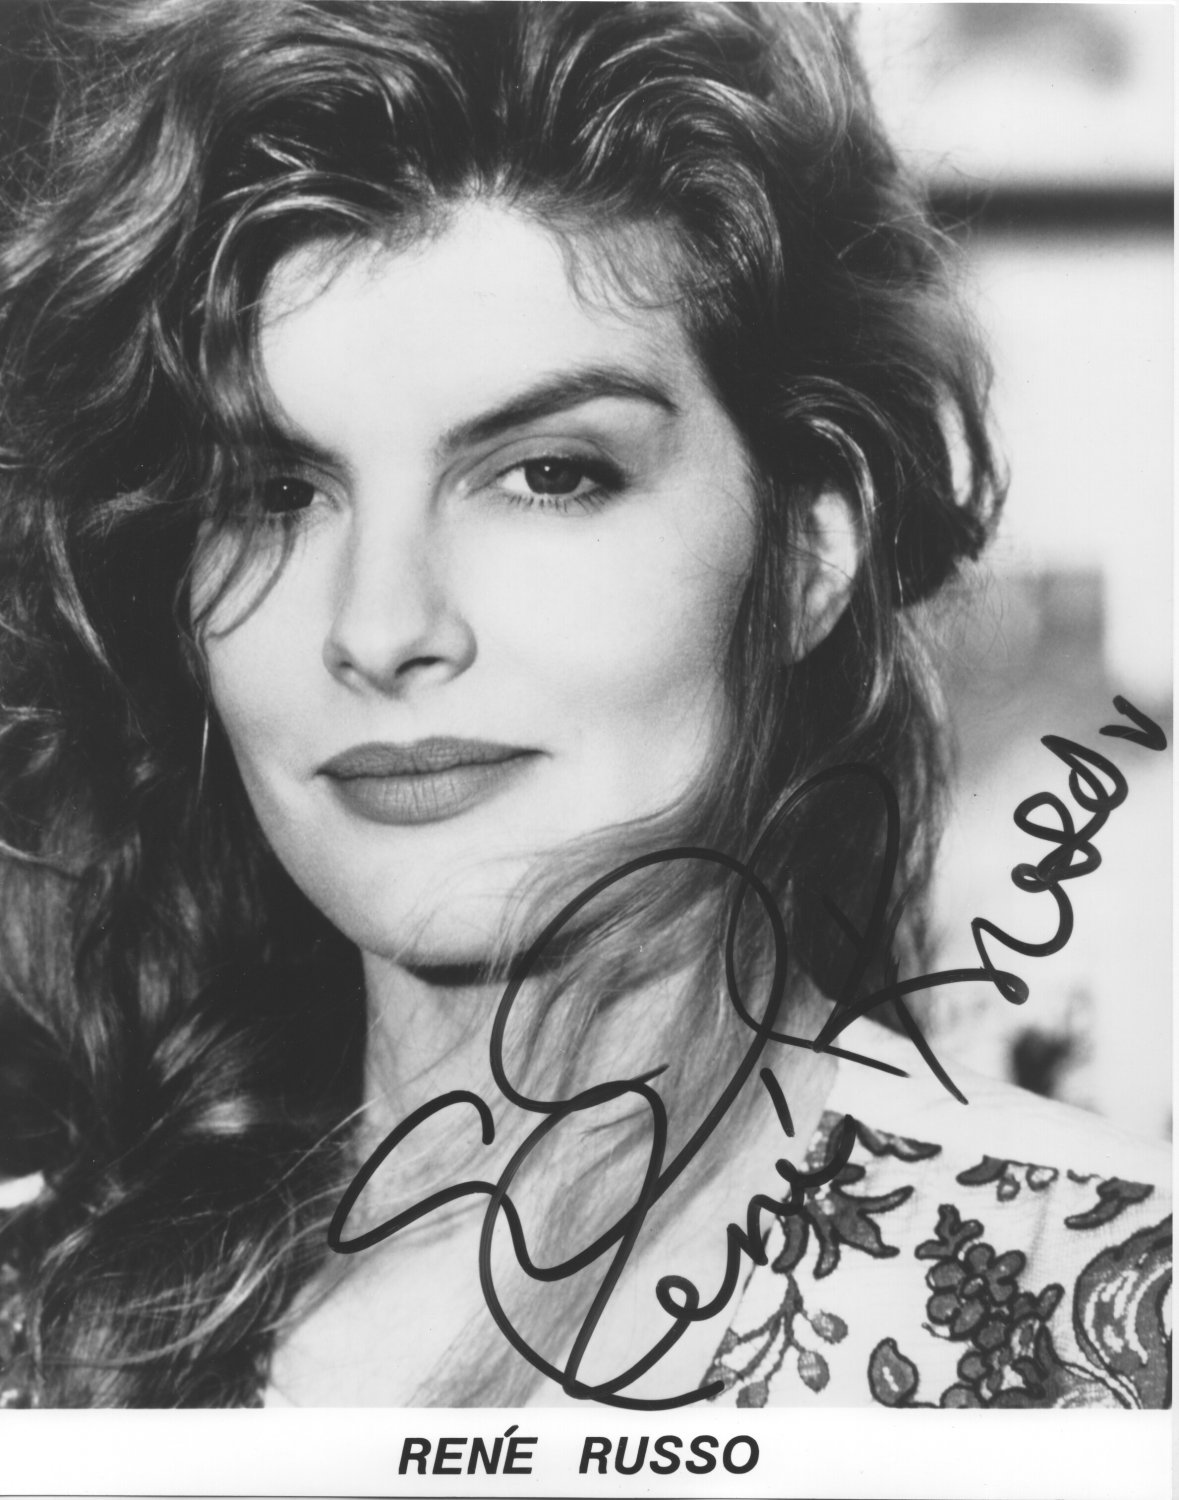 RENE RUSSO - STUNNING ACTRESS - HAND SIGNED AUTOGRAPHED PHOTO WITH COA